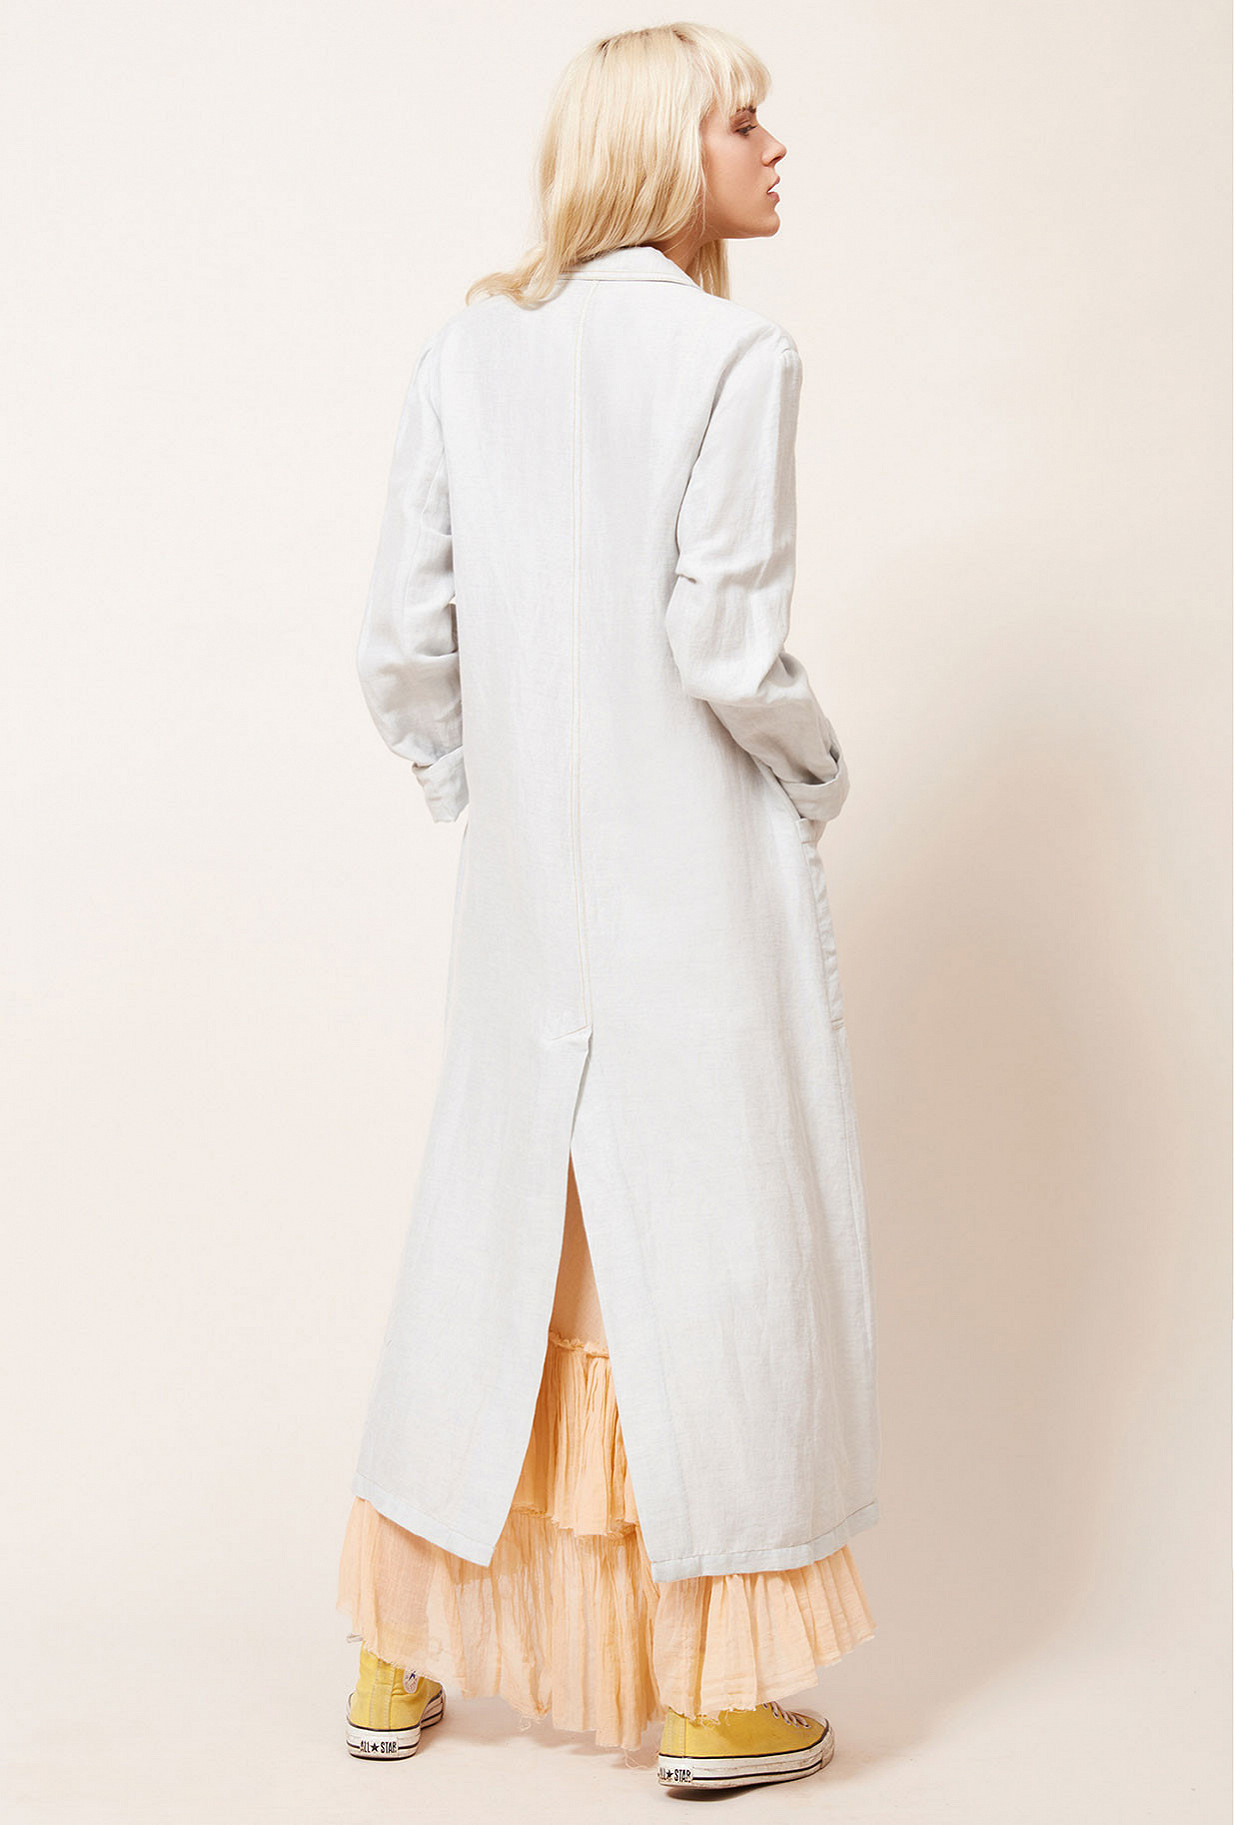 Sky blue Coat East Wood Mes Demoiselles Paris